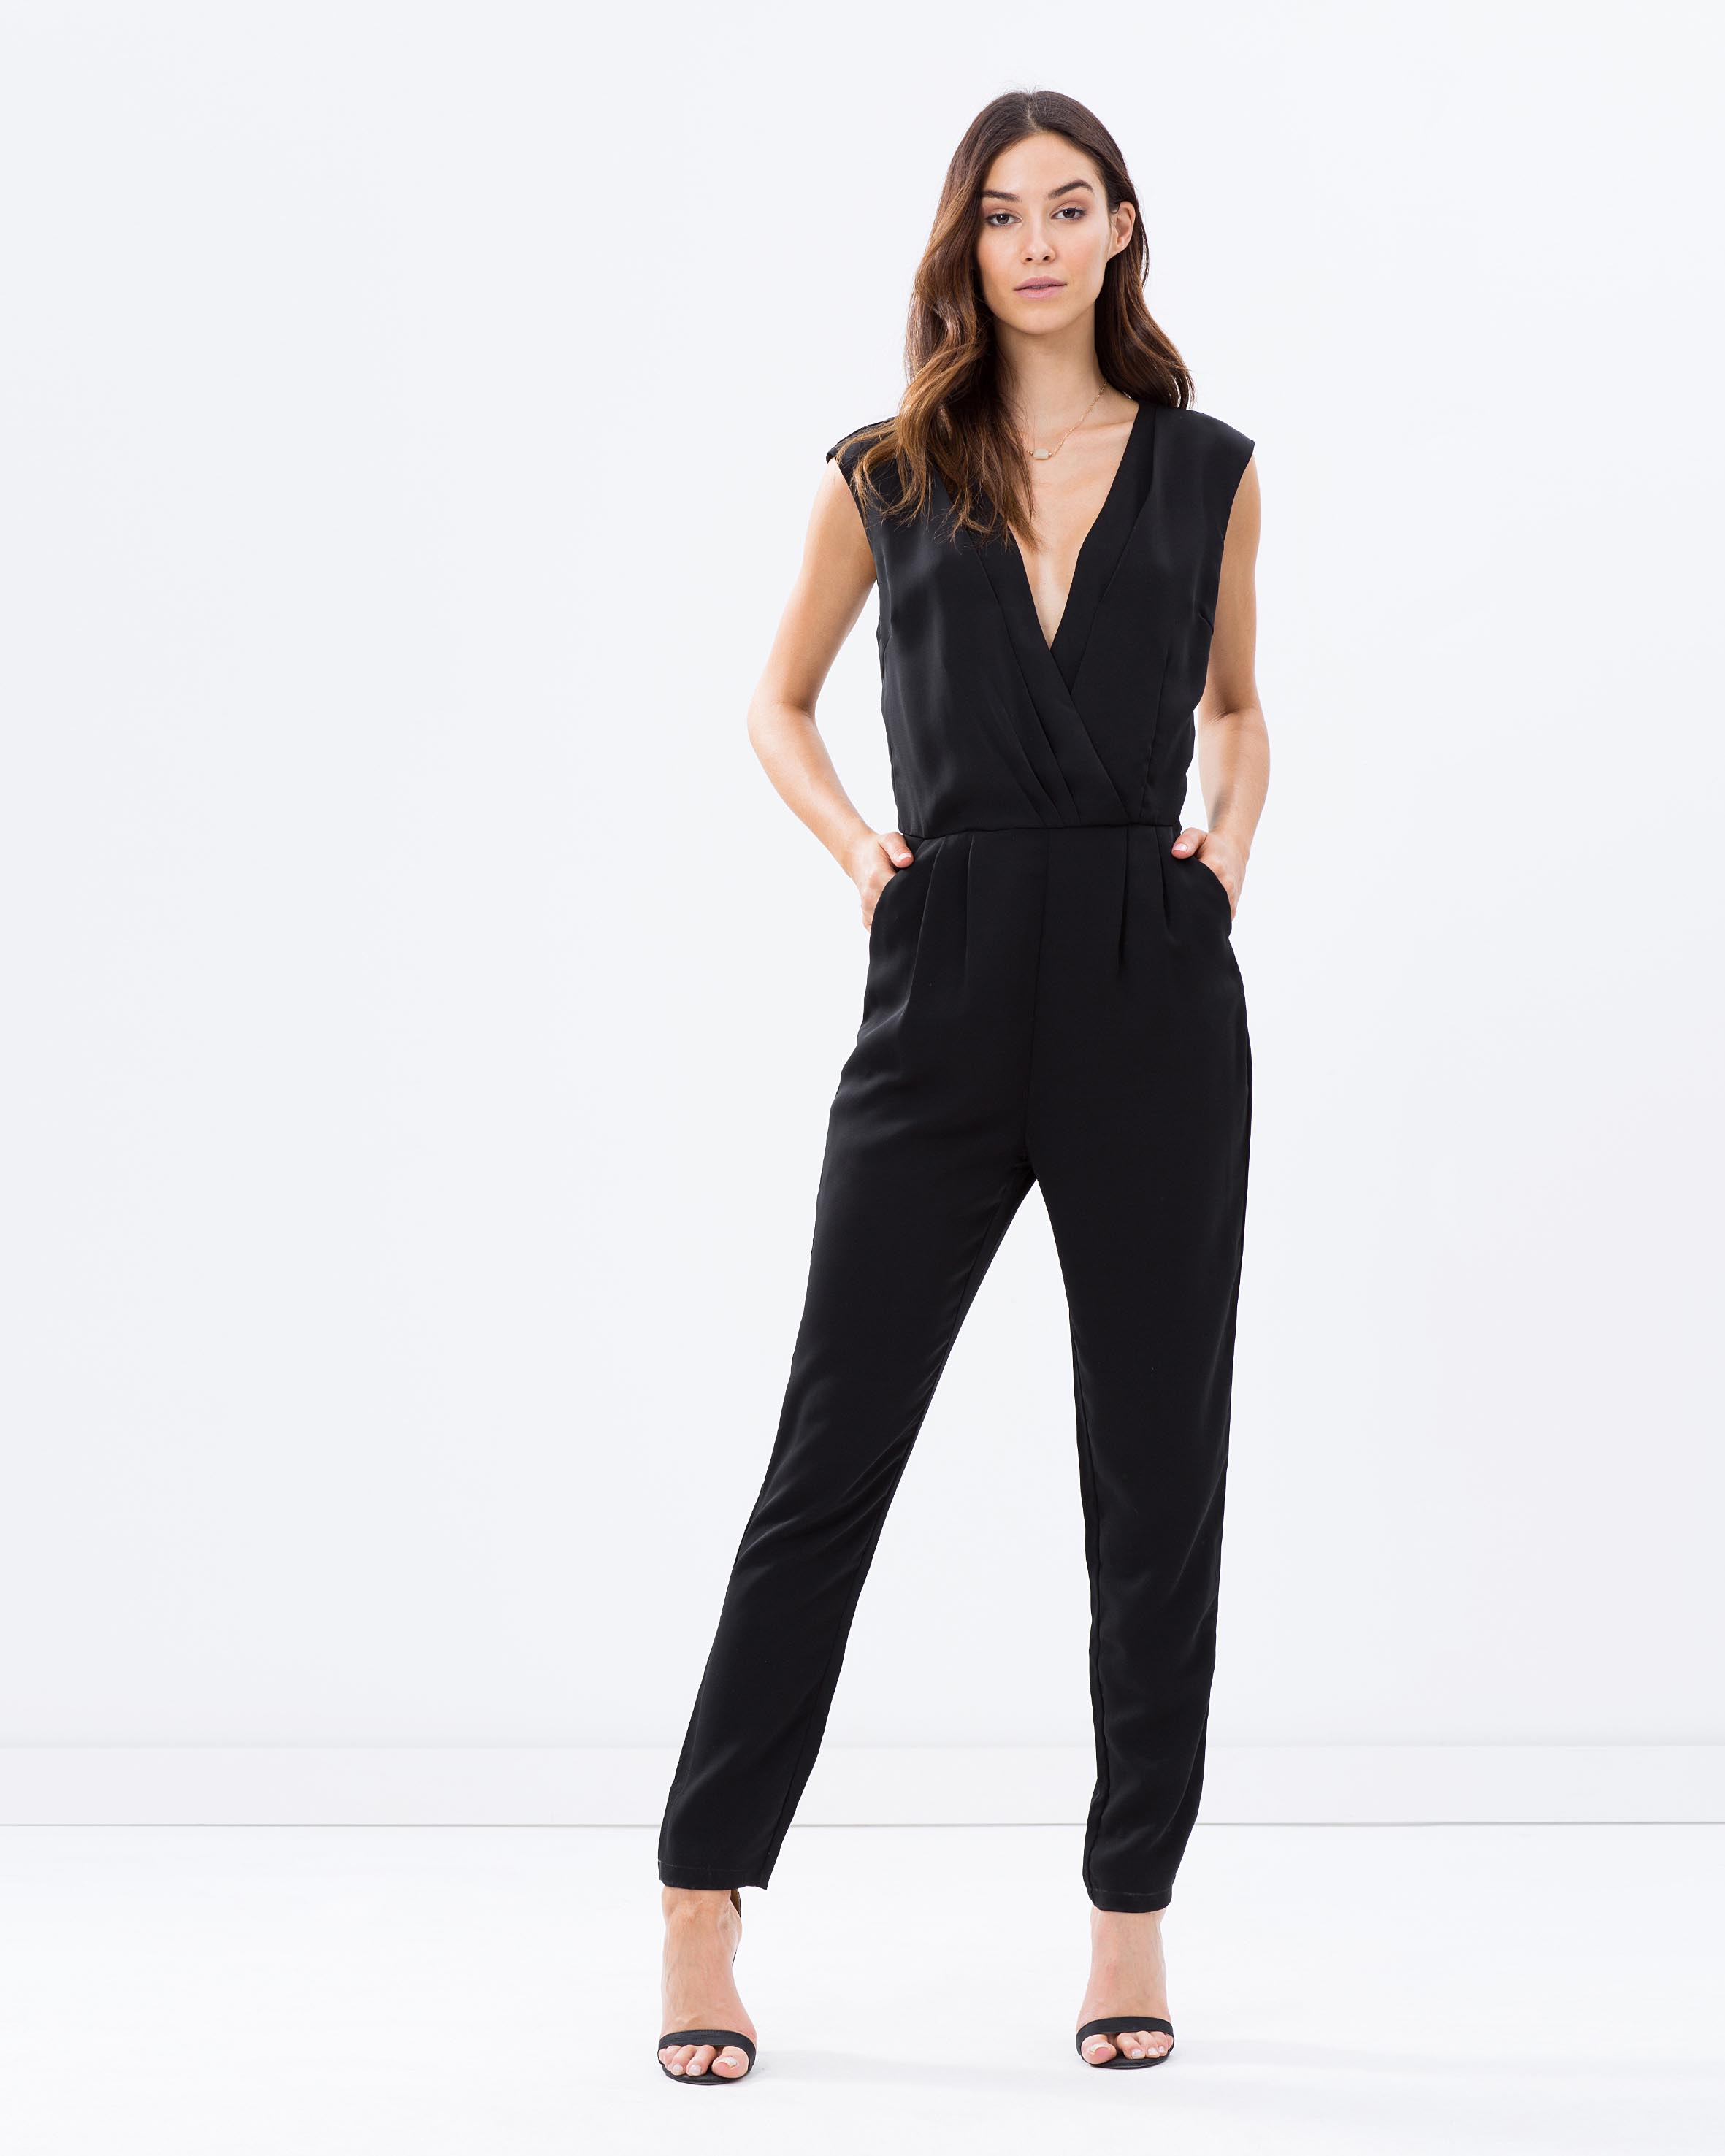 7a384871591 Women Jumpsuit With New Images In Australia U2013 Playzoa.com